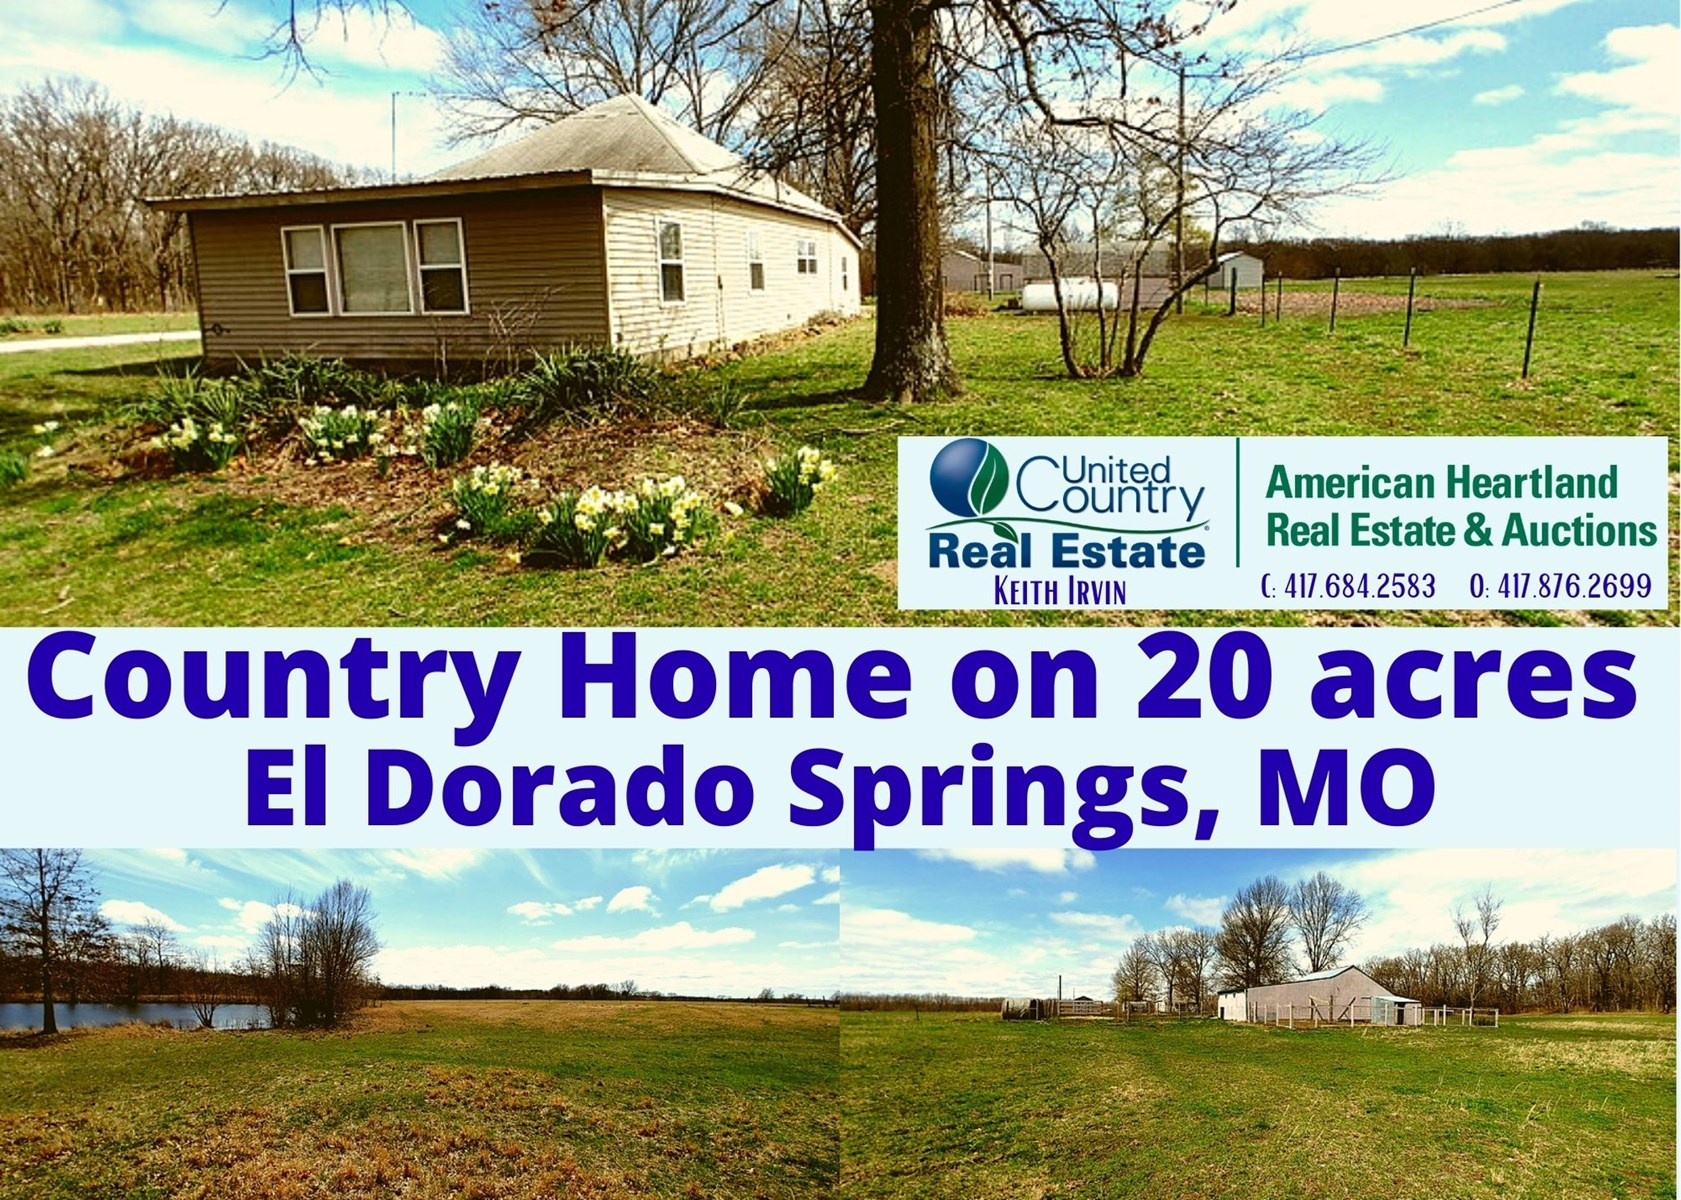 Cedar County Missouri Country Home with Acreage for Sale